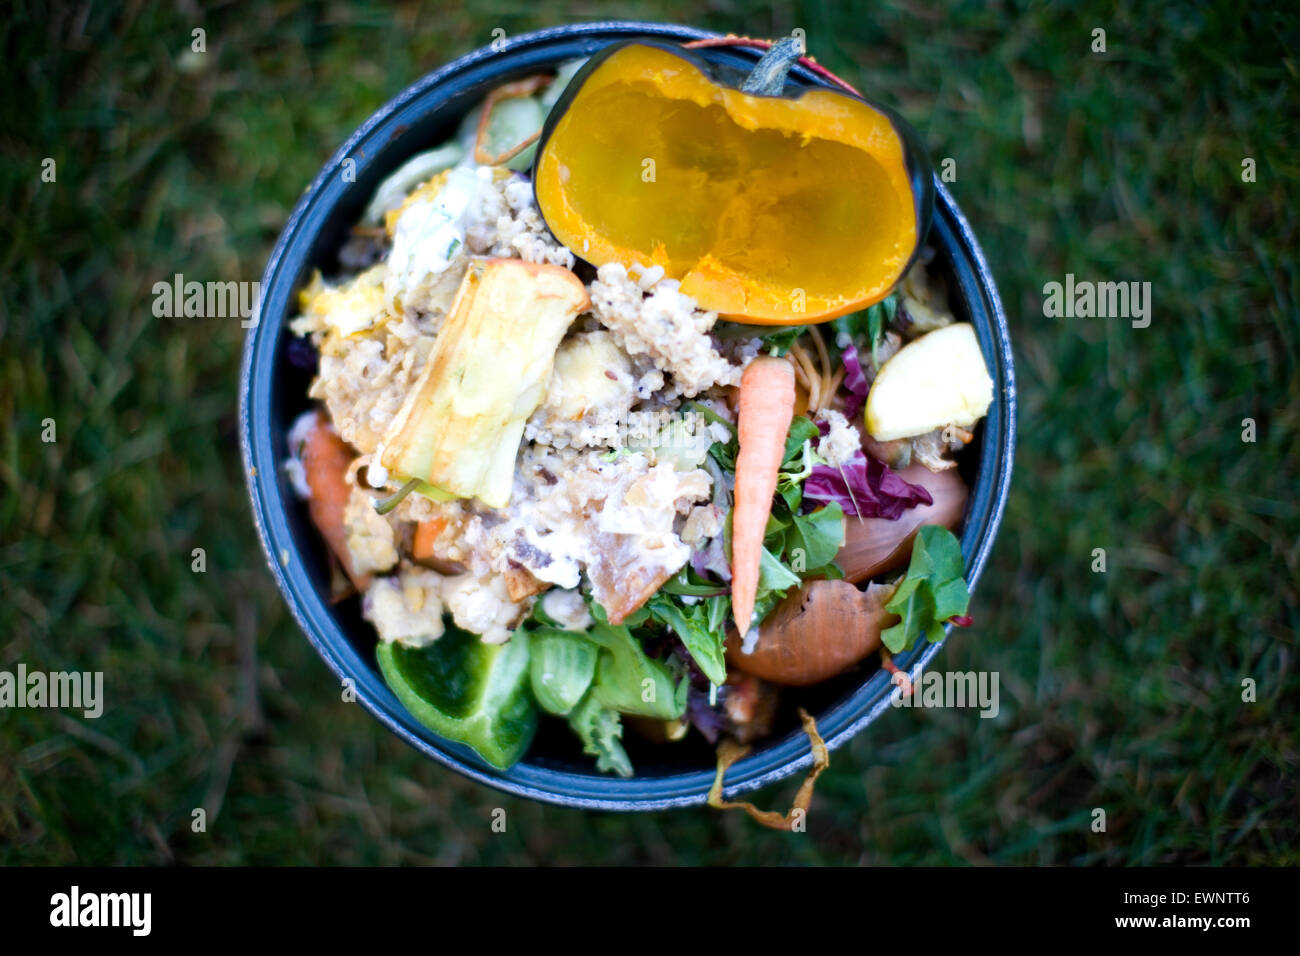 Close up image of a household compost bucket with organic material inside - Stock Image